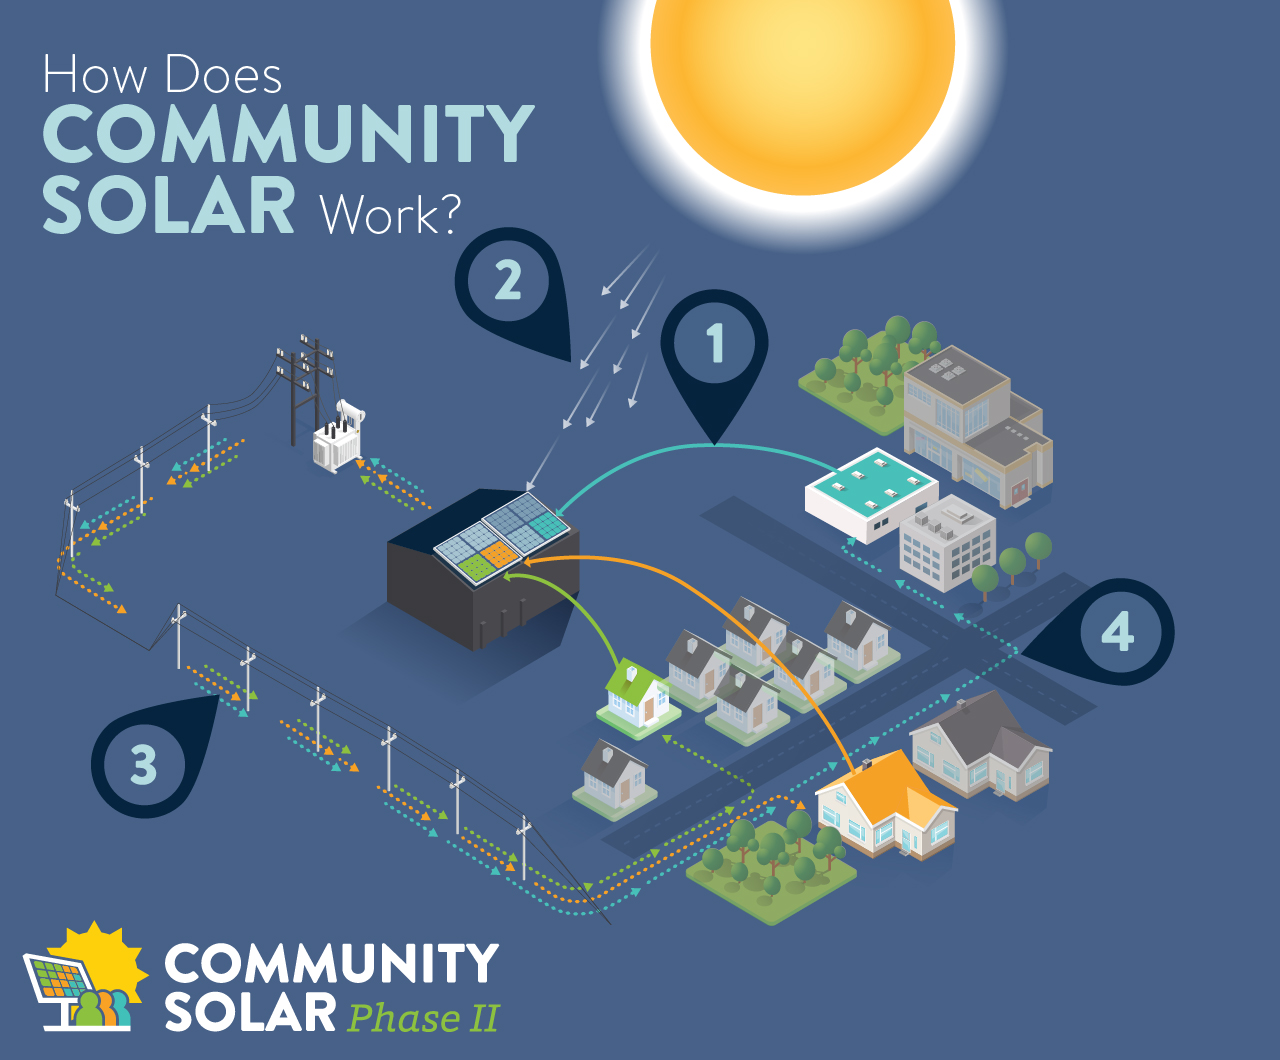 Community Solar Phase II